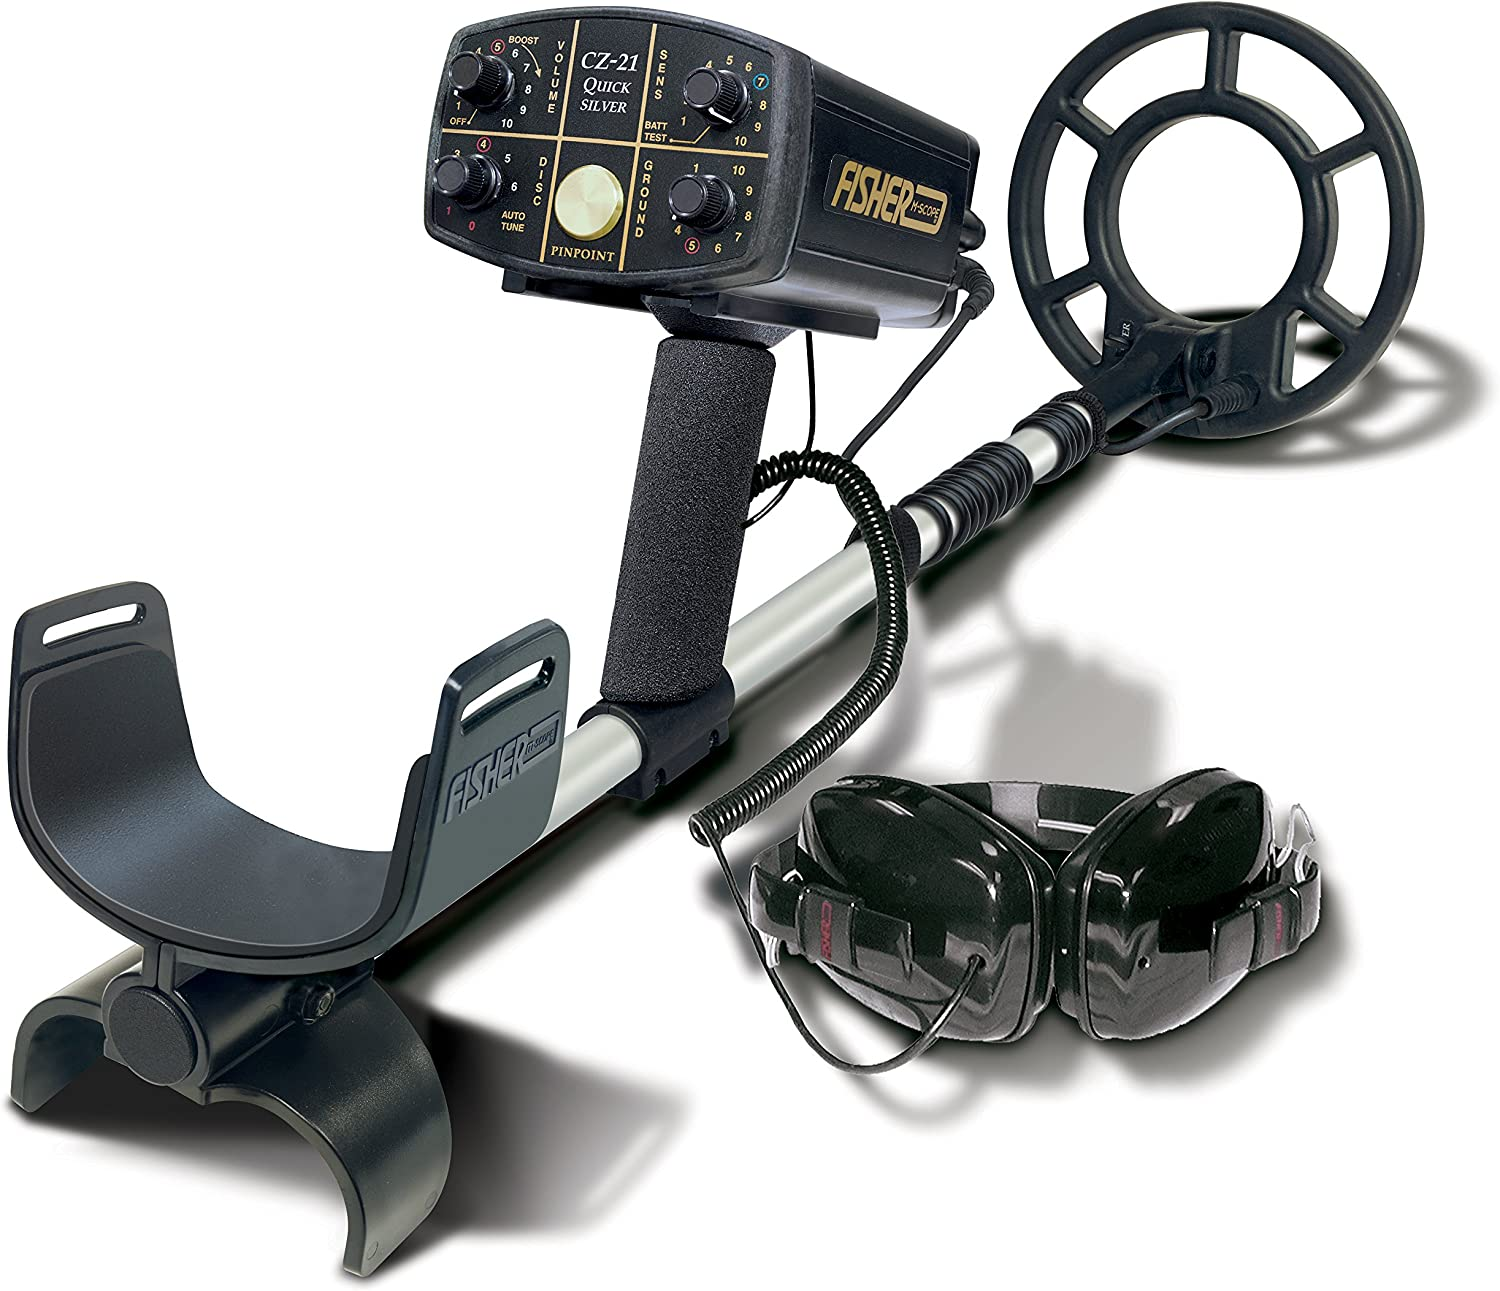 Fisher CZ21-8 Underwater Metal Detector